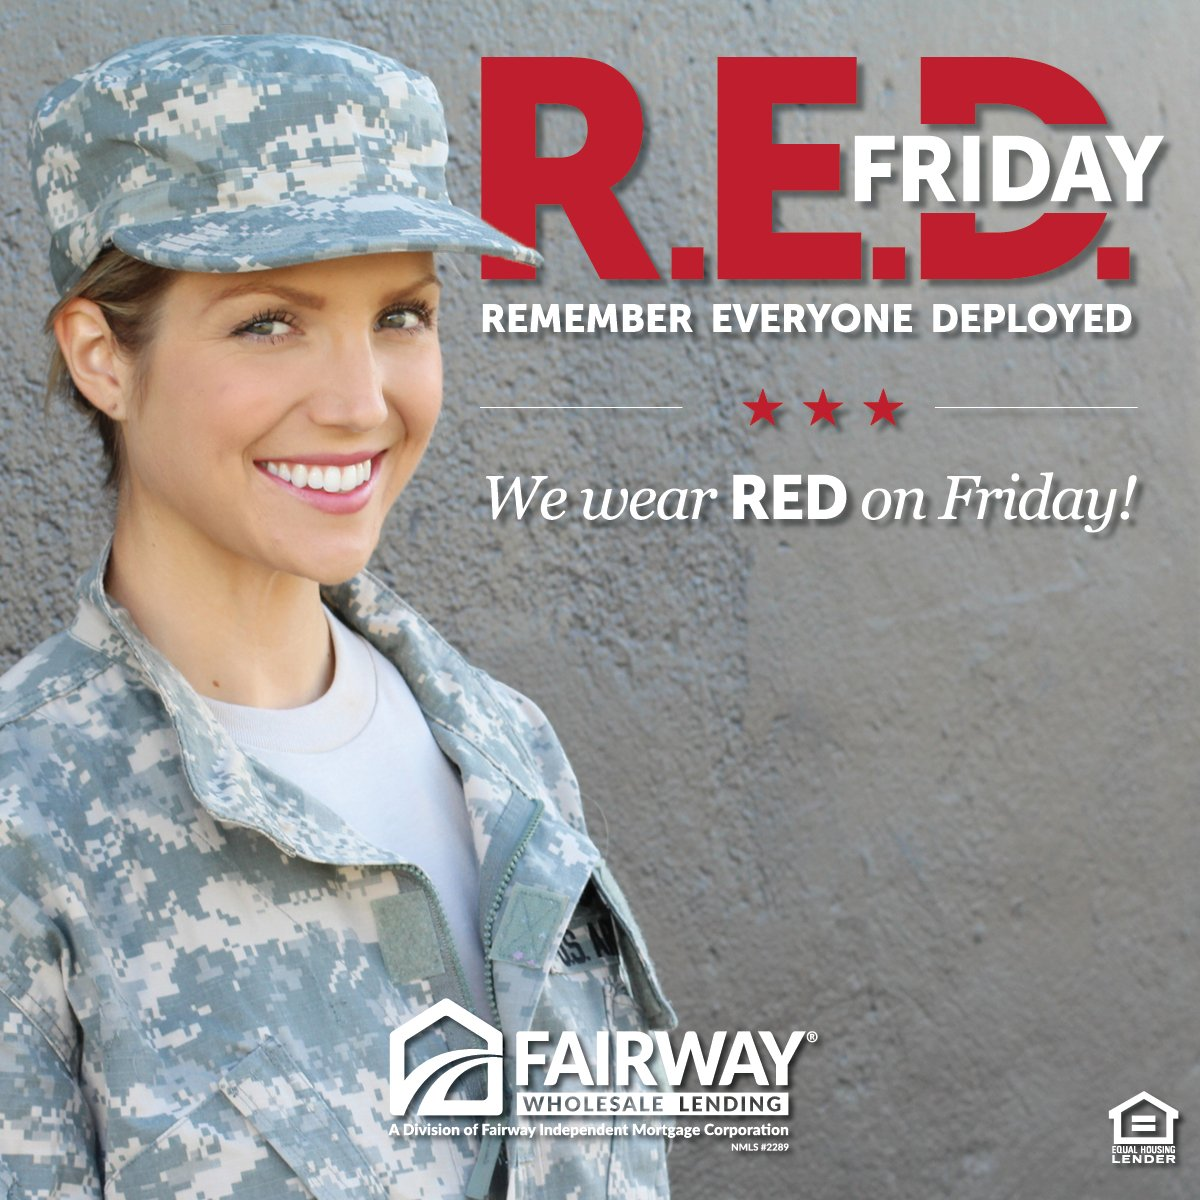 Today marks the 244th birthday of the United States Army! Which makes this #REDFriday even more special. Thank you to everyone serving and happy birthday to the U.S. ARMY! #FairwayWholesaleLending<br>http://pic.twitter.com/vHKCIGkp0Y